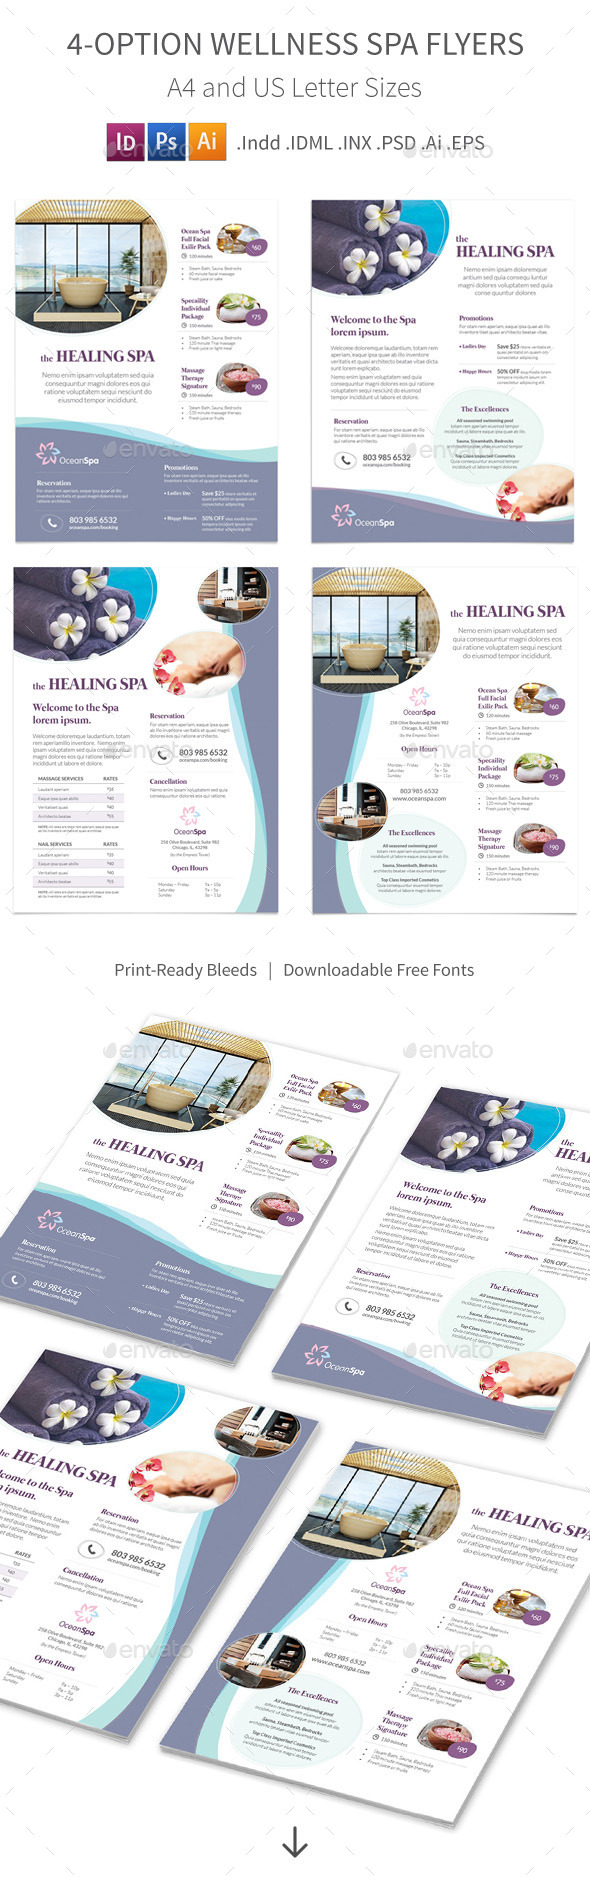 Wellness Spa Flyers – 4 Options - Corporate Flyers